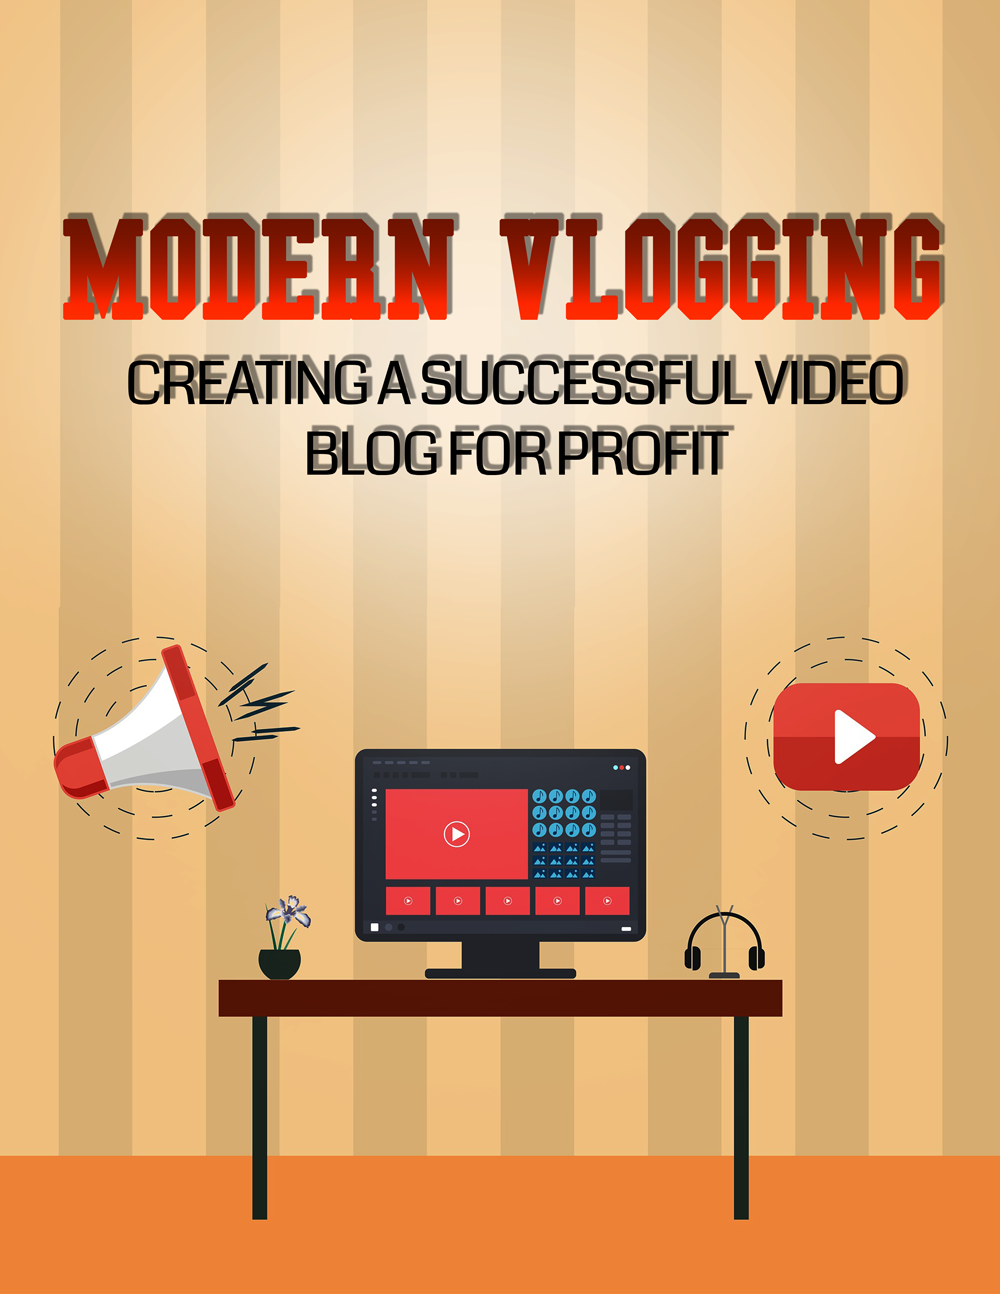 Modern Vlogging (Creating A Successful Video Blog For Profit) Ebook's Ebook Image